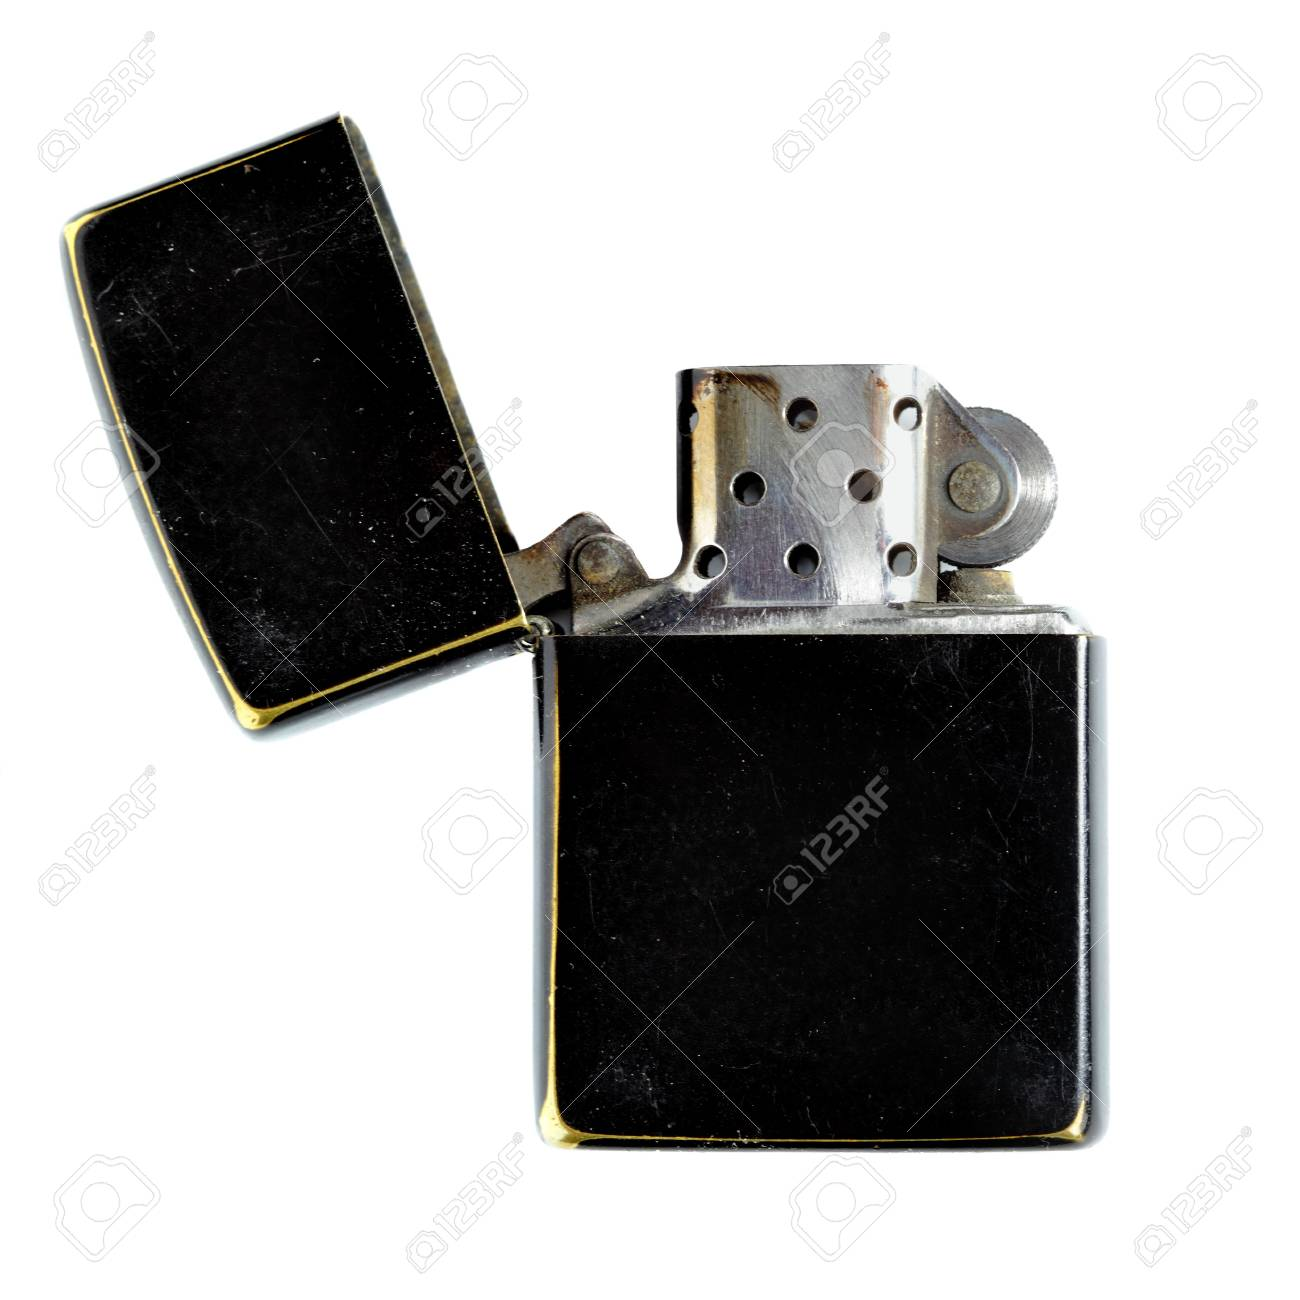 Black lighter isolated over the white background Stock Photo - 5450861